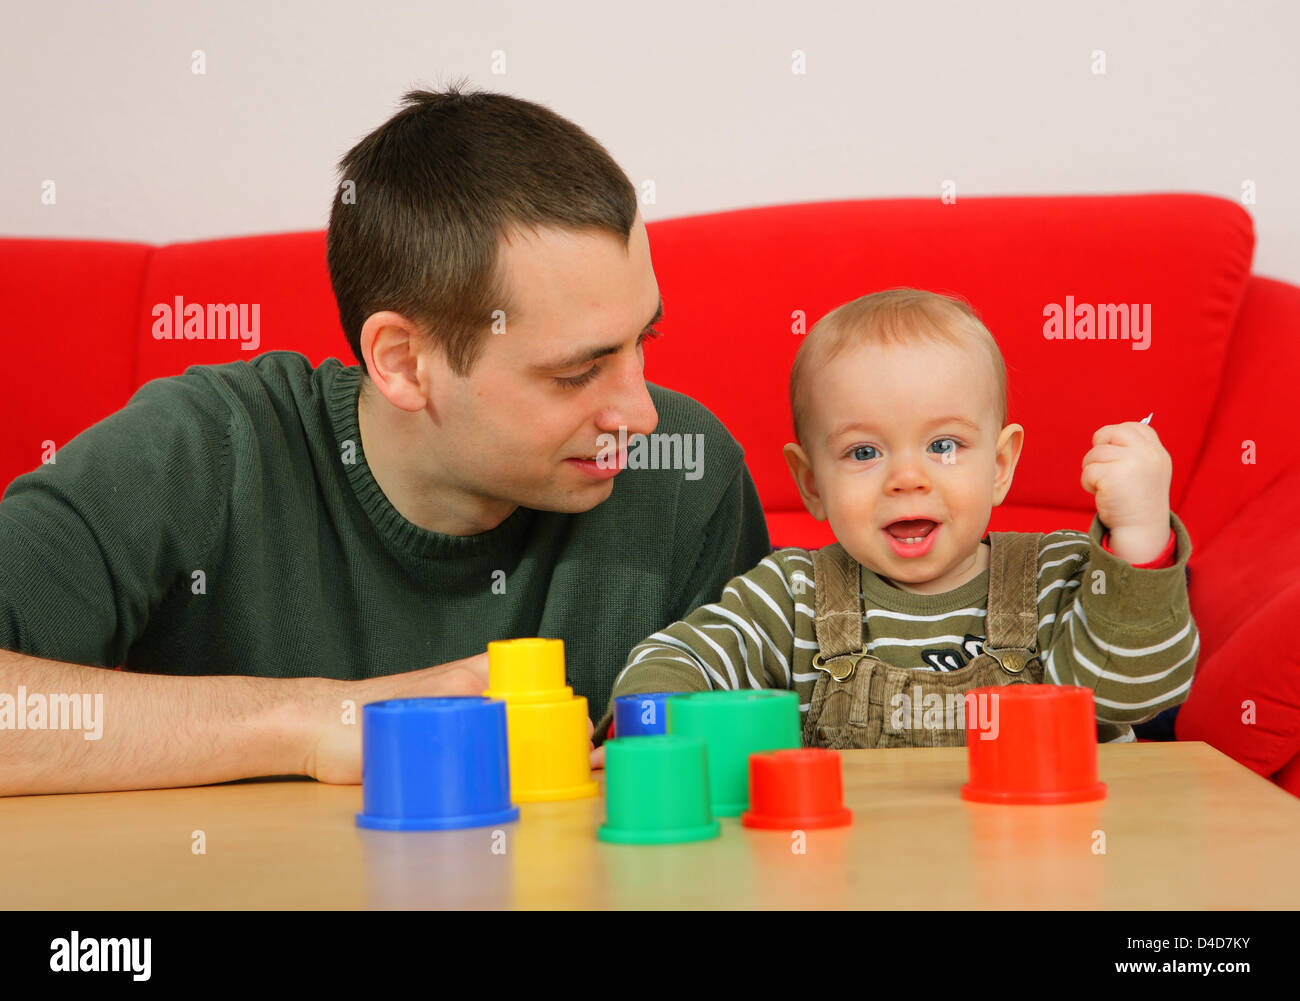 Bjoern Gerth plays with his son Tilman at his home in Mainz, Germany, 20 March 2008. The 29-yea-old is one of 2400 - Stock Image